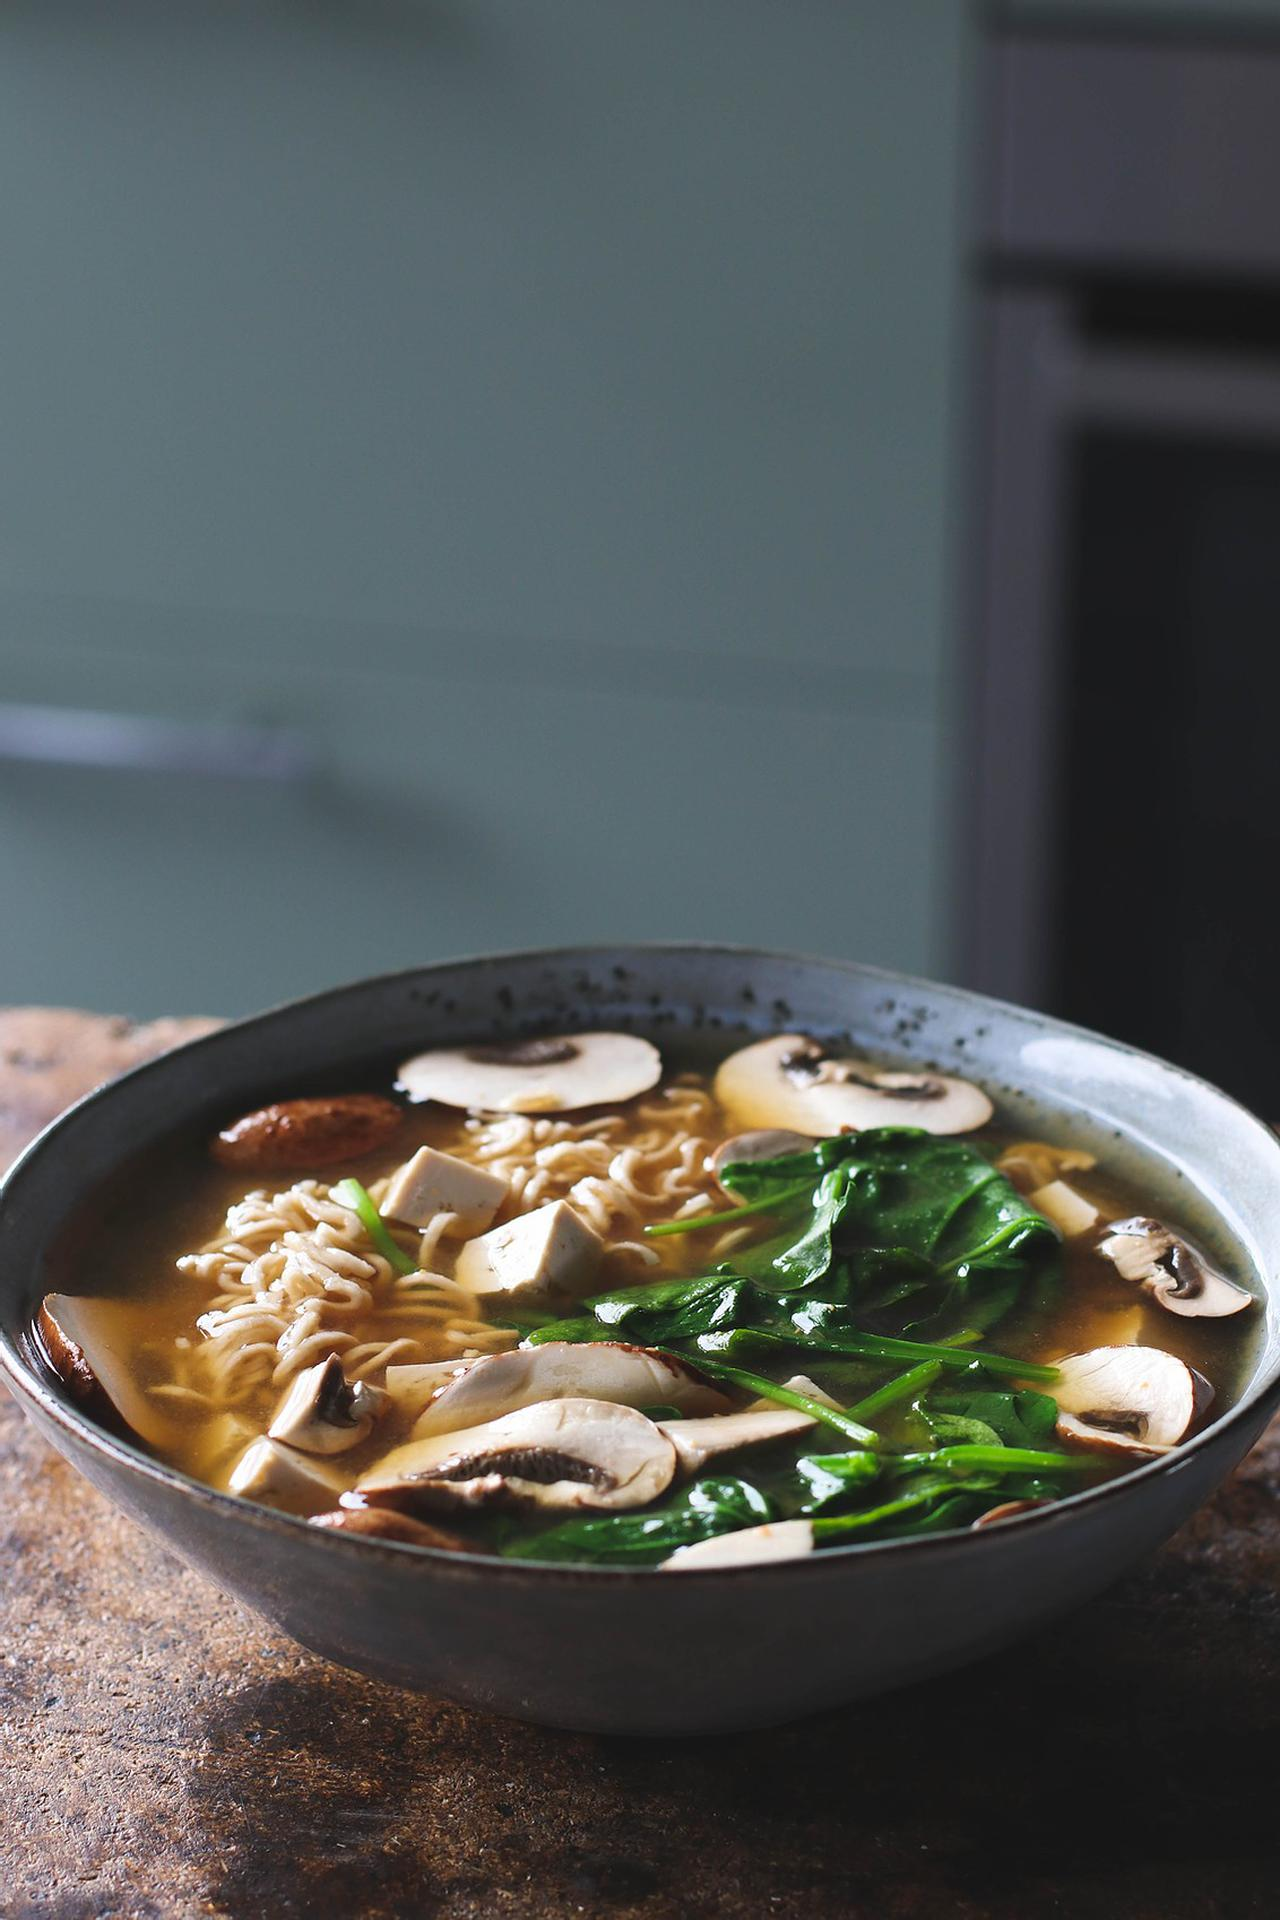 Main image of To-Go Miso Noodle Soup